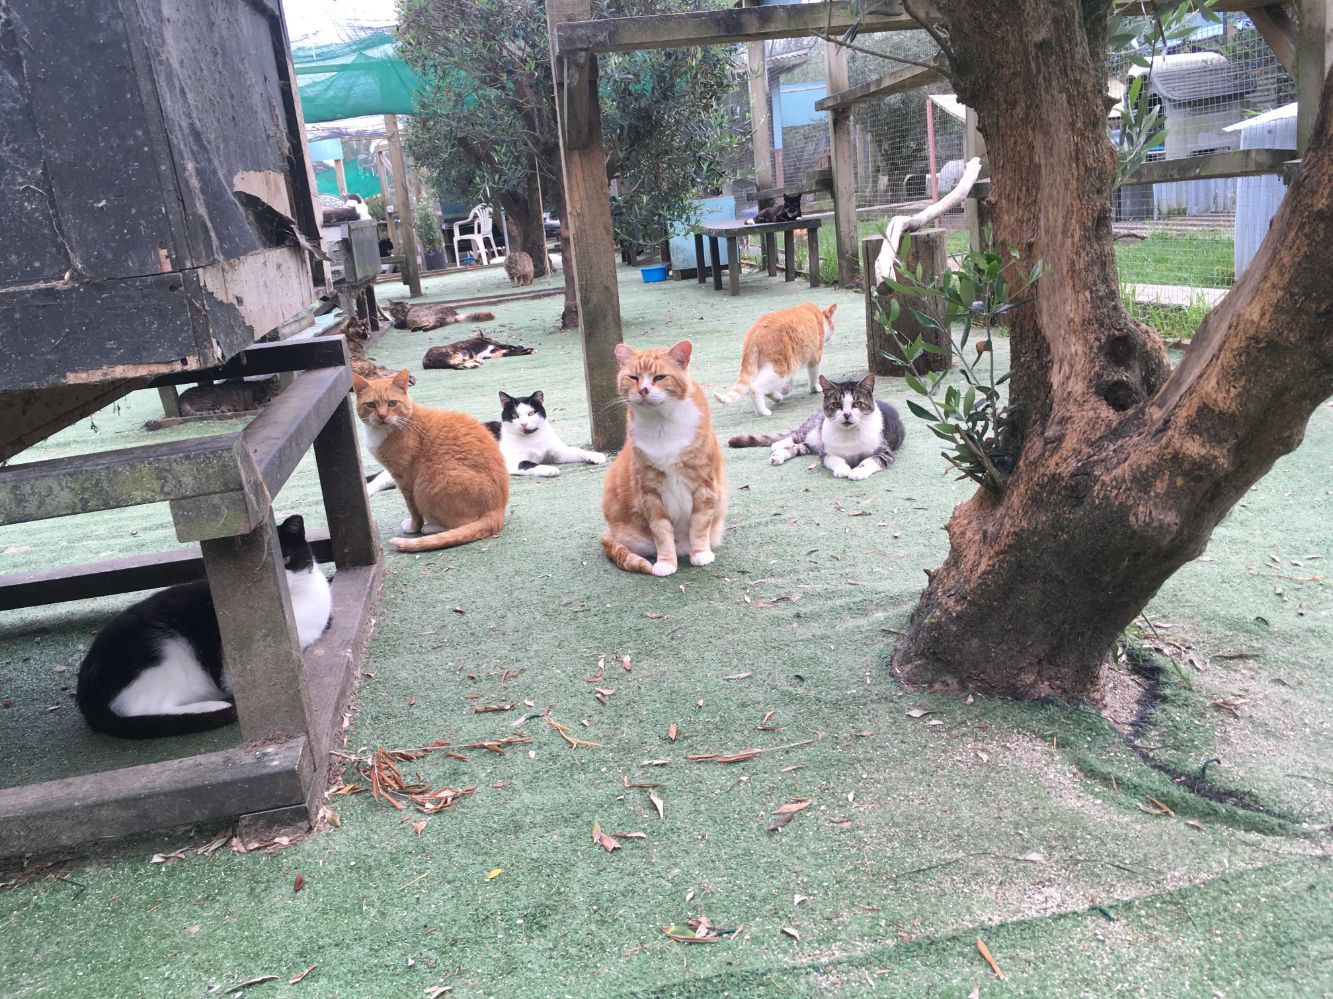 These cats are affectionately known as the Moggie Mafia by the volunteers. They came from Quay Street, downtown Auckland and have banded together in a little gang. They are all quite suspicious of humans, but live together in harmony - keeping an eye on any humans that walk too close!